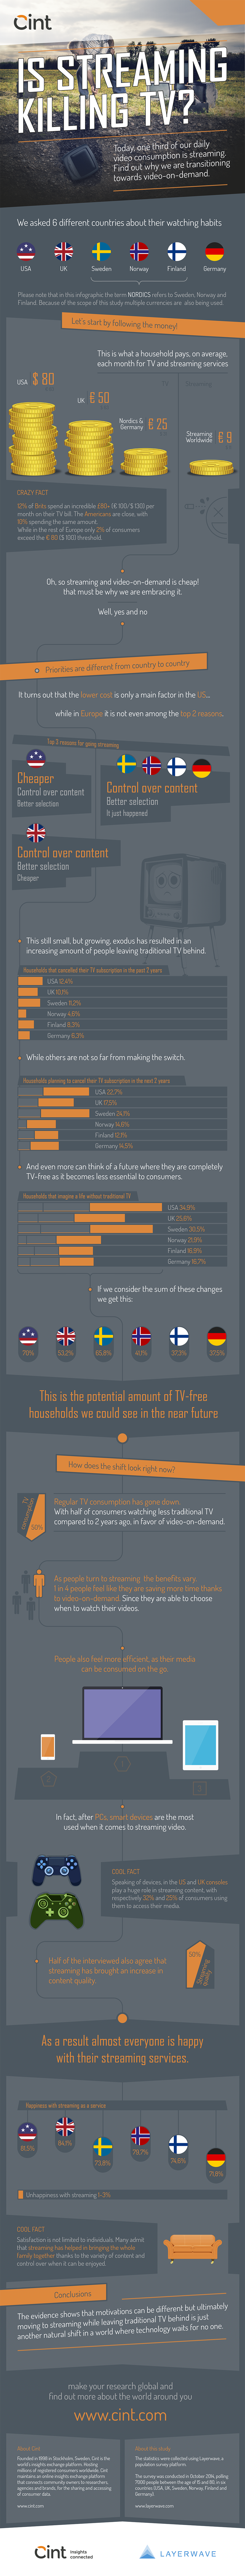 Cint infographic - Streaming habits worldwide.png